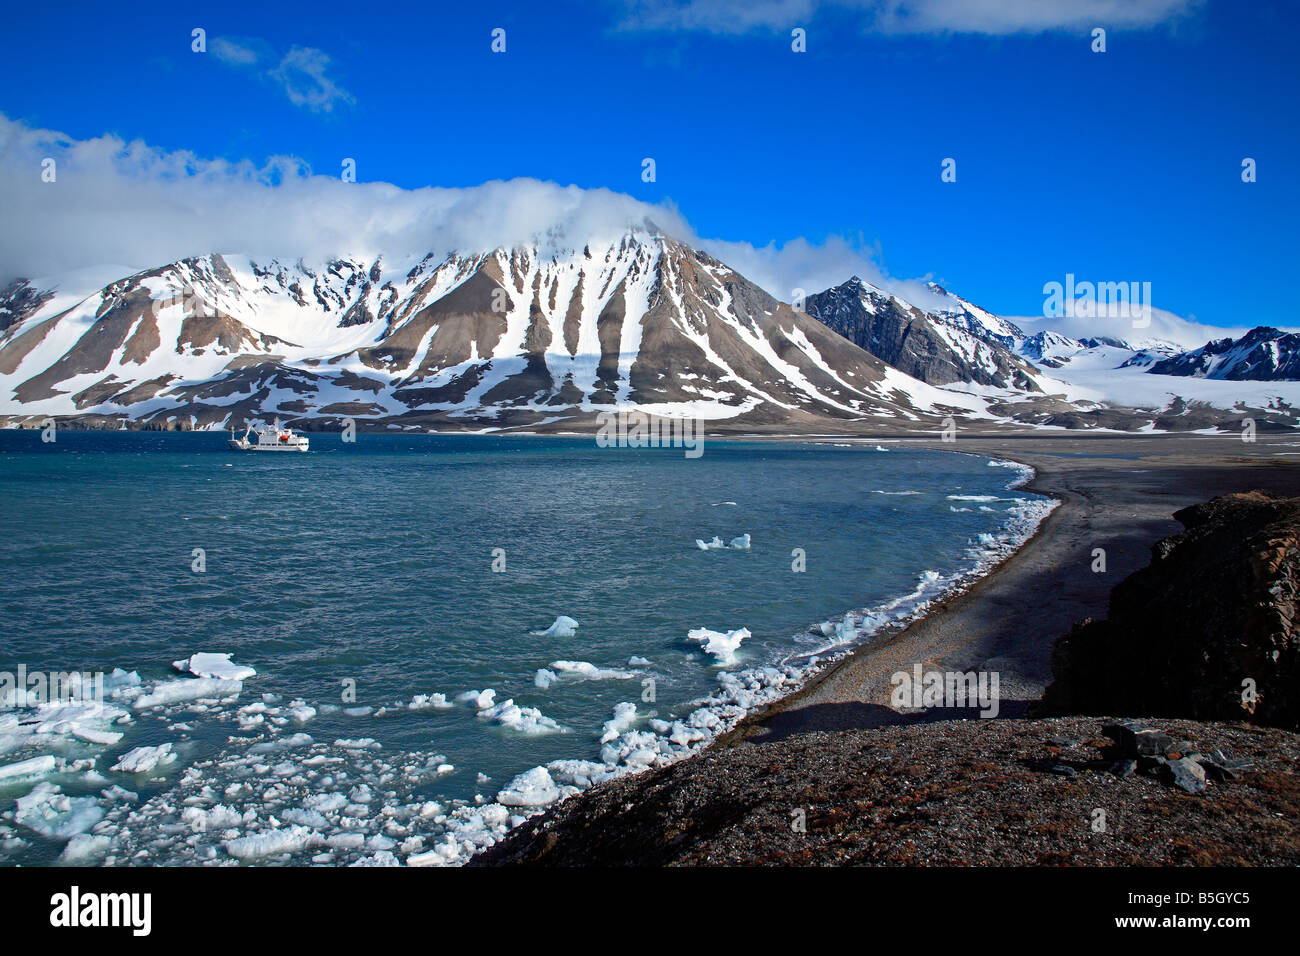 Spitsbergen Snowy Mountains Bay With Ice And Ship Anchored - Stock Image